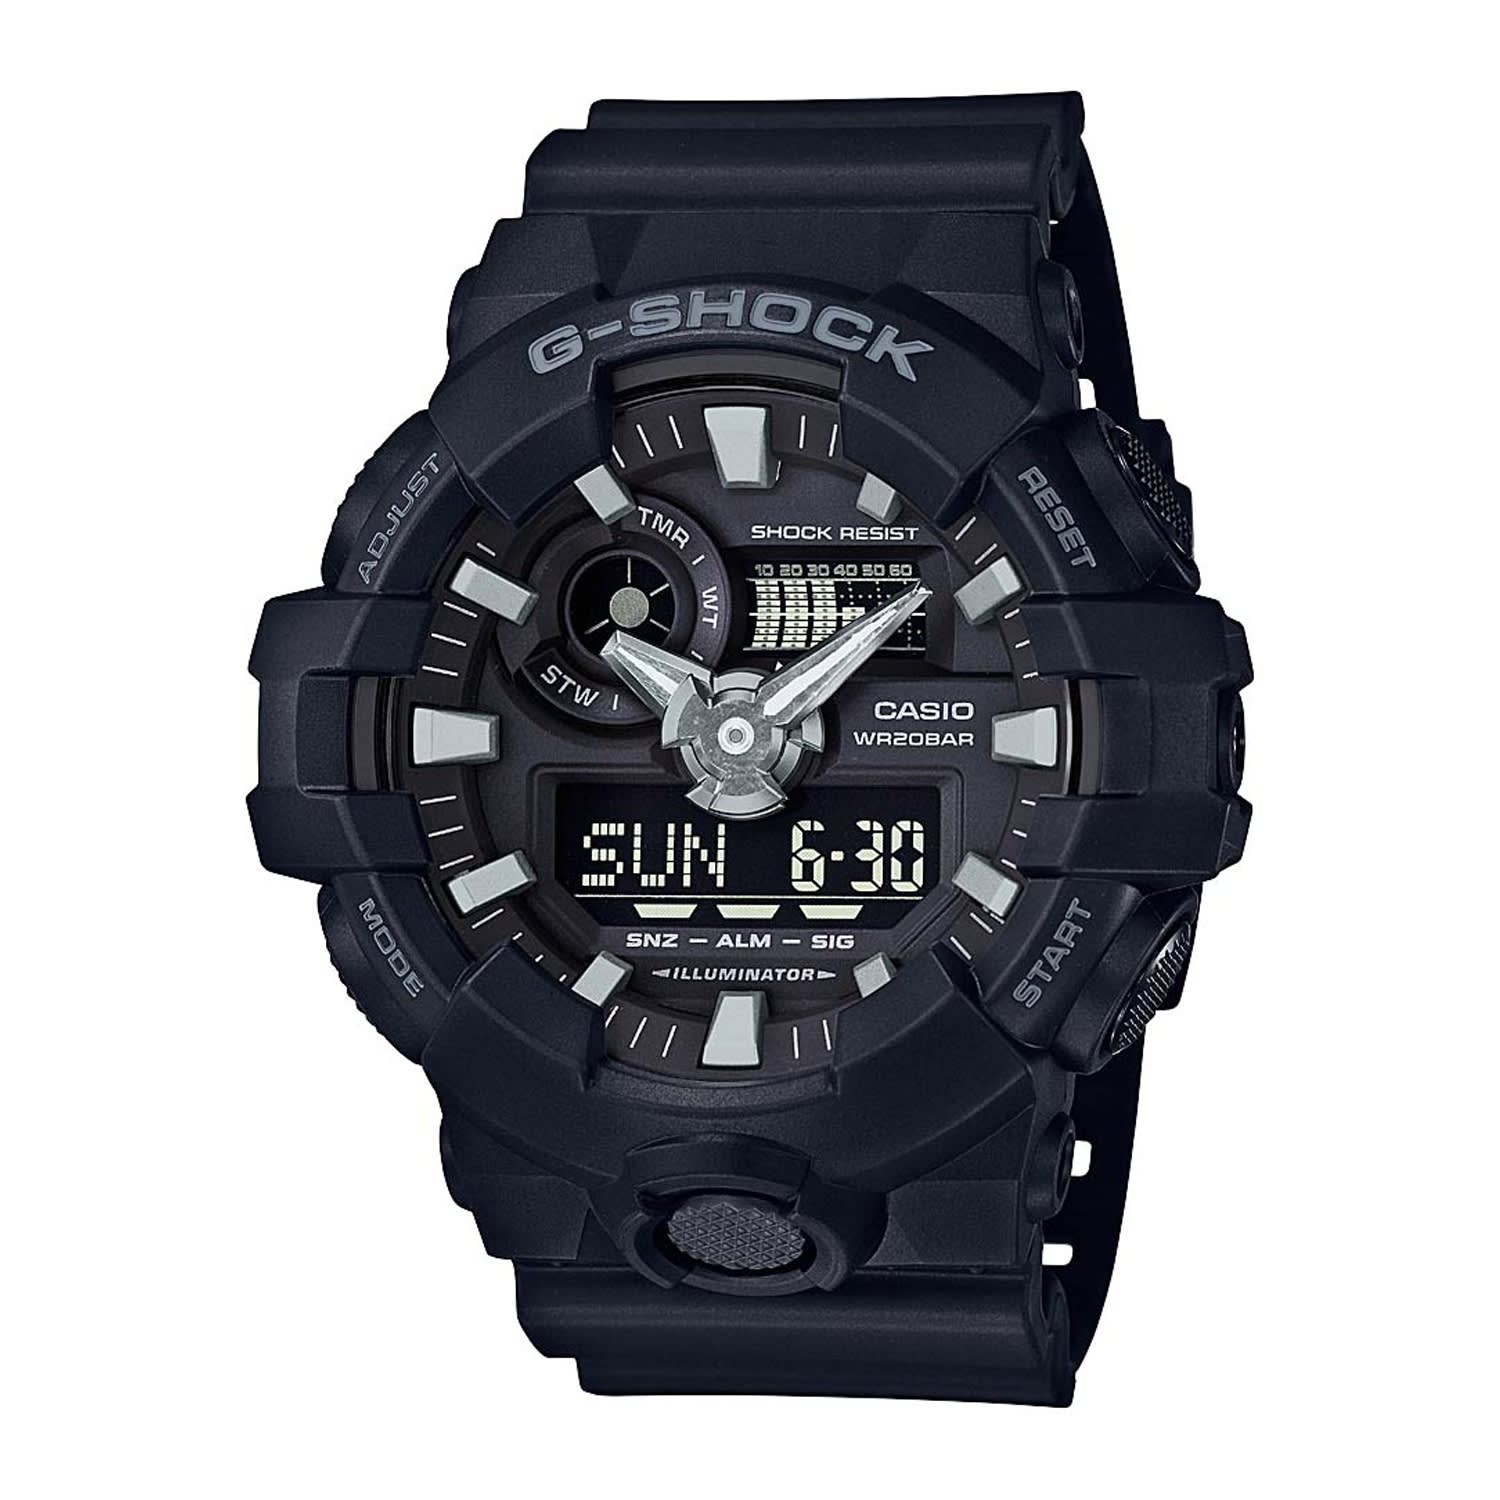 Casio G-Shock Watch Illuminator GA-700